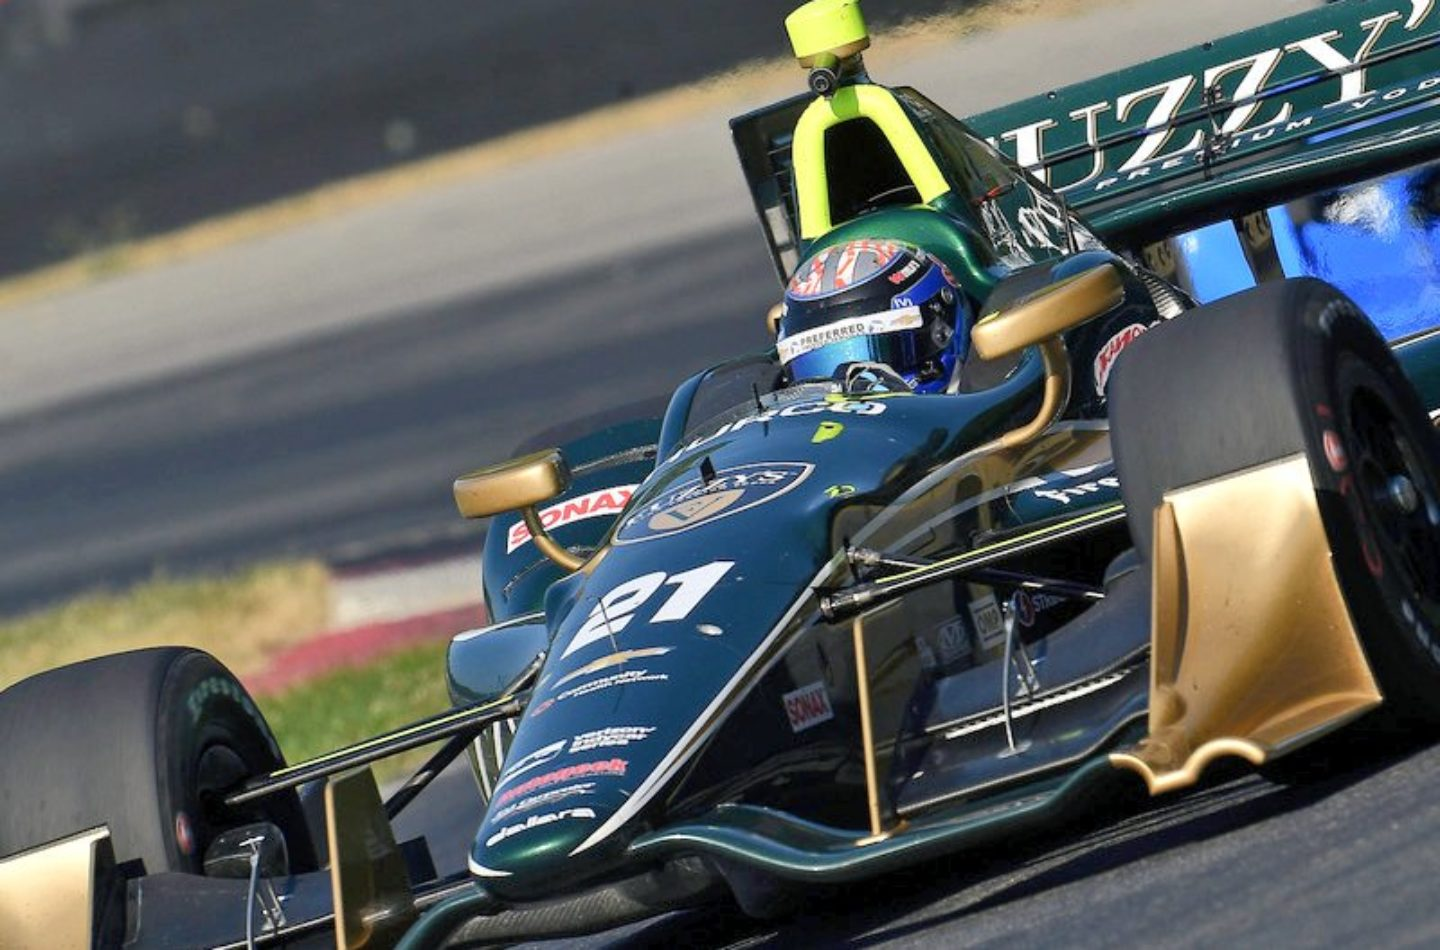 Indycar | JR Hildebrand torna in Indycar col team di Ed Carpenter